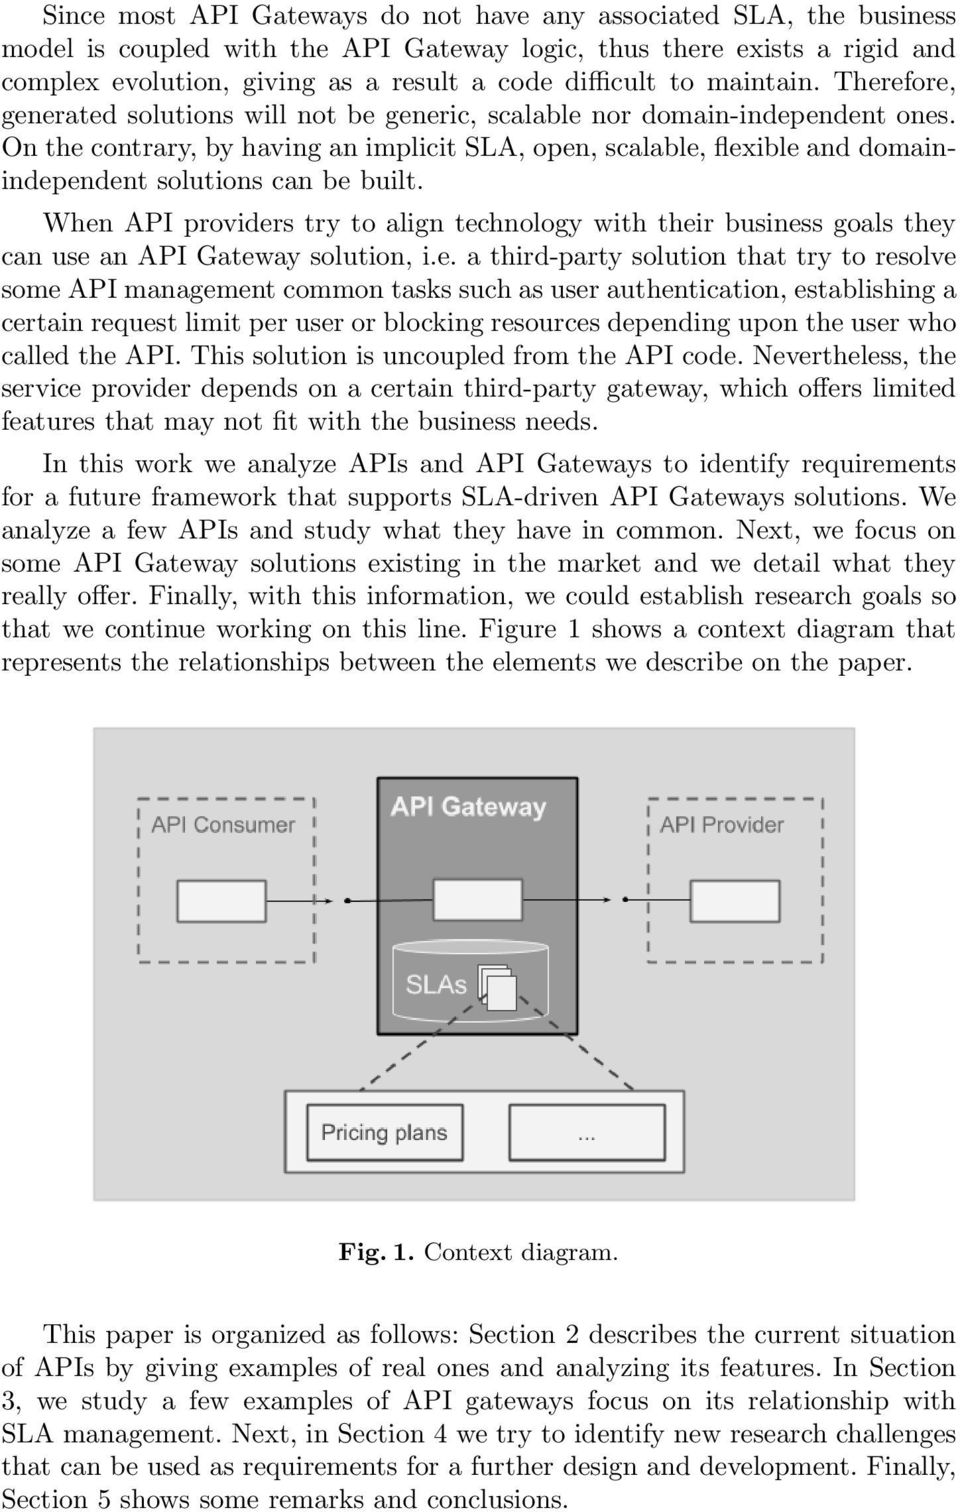 Towards SLA-Driven API Gateways - PDF